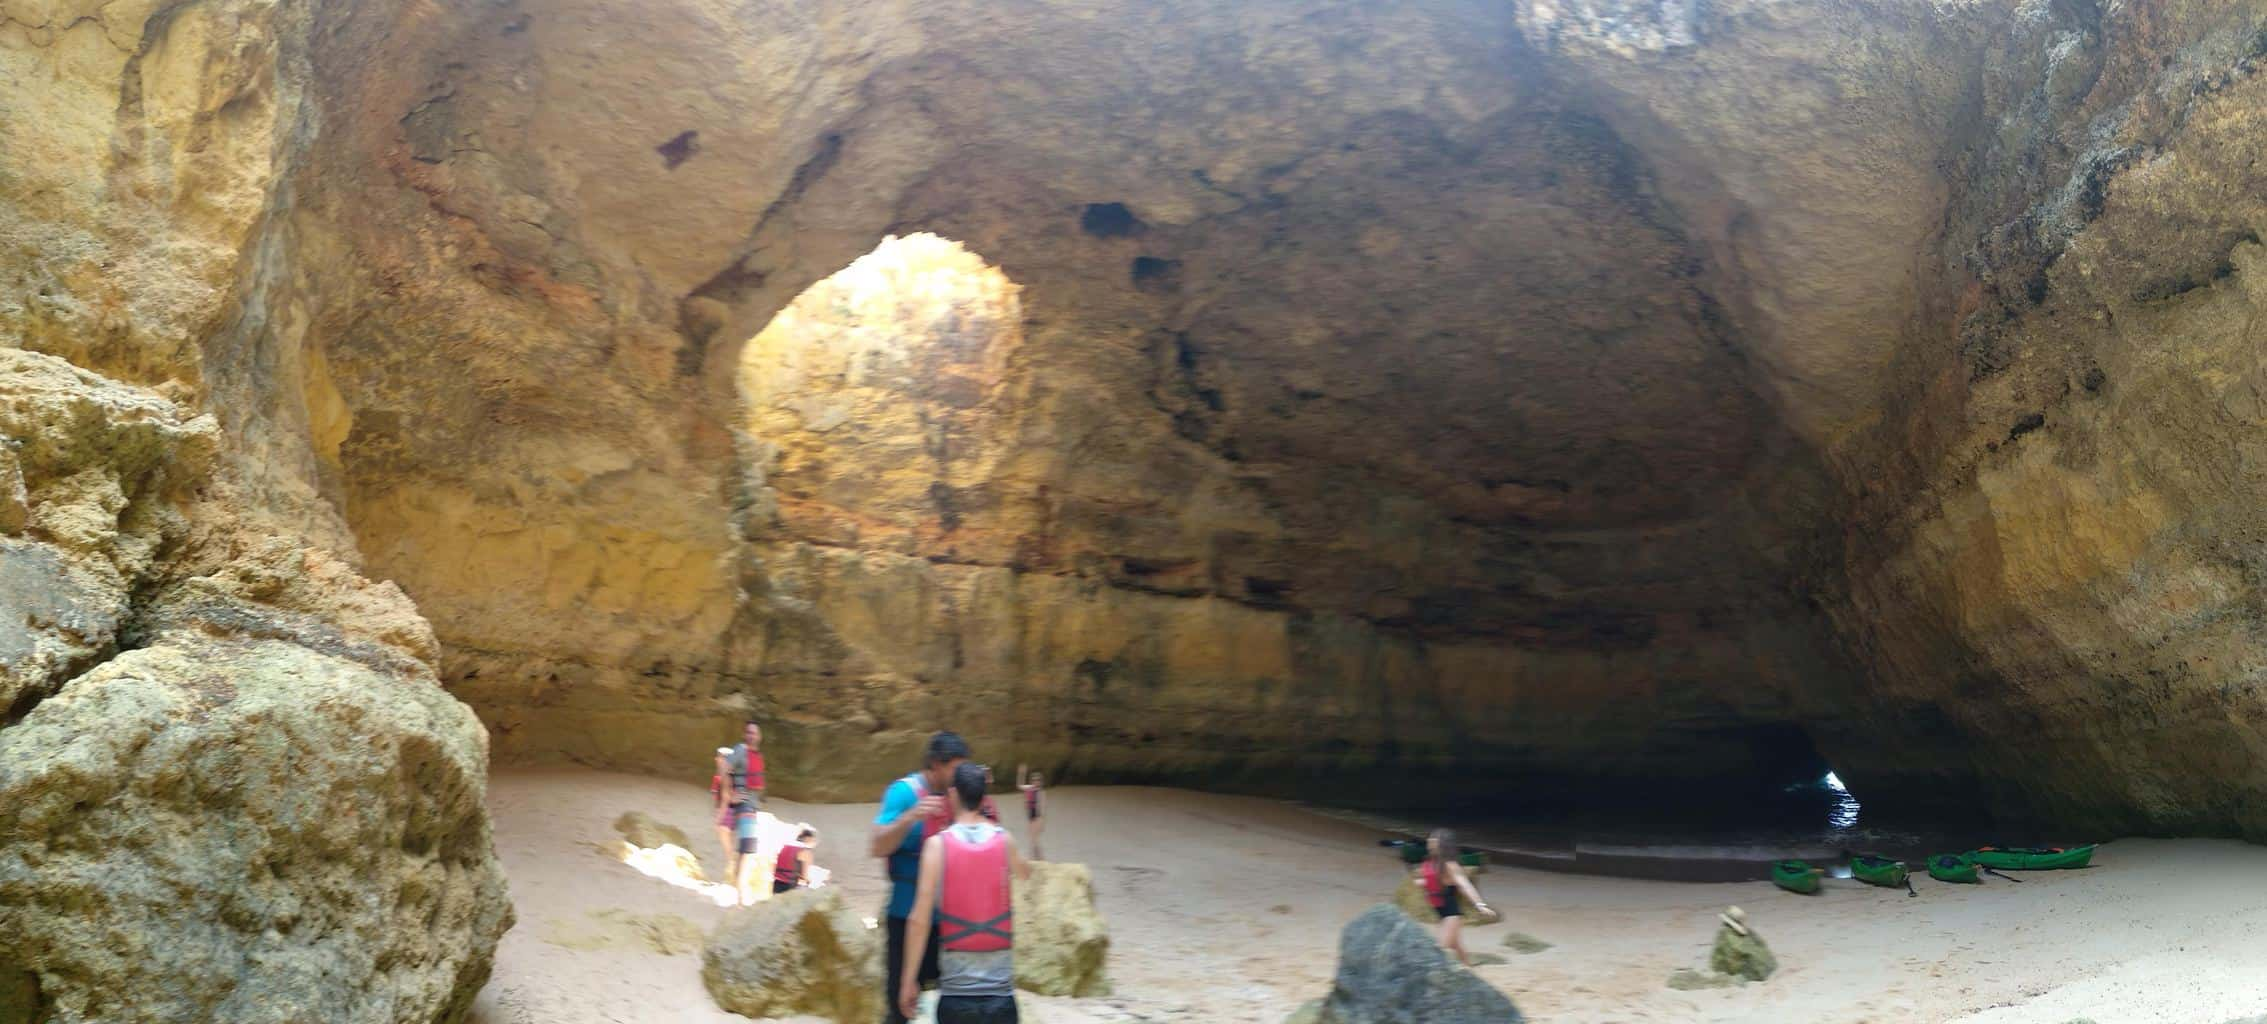 group of kayakers in a cave